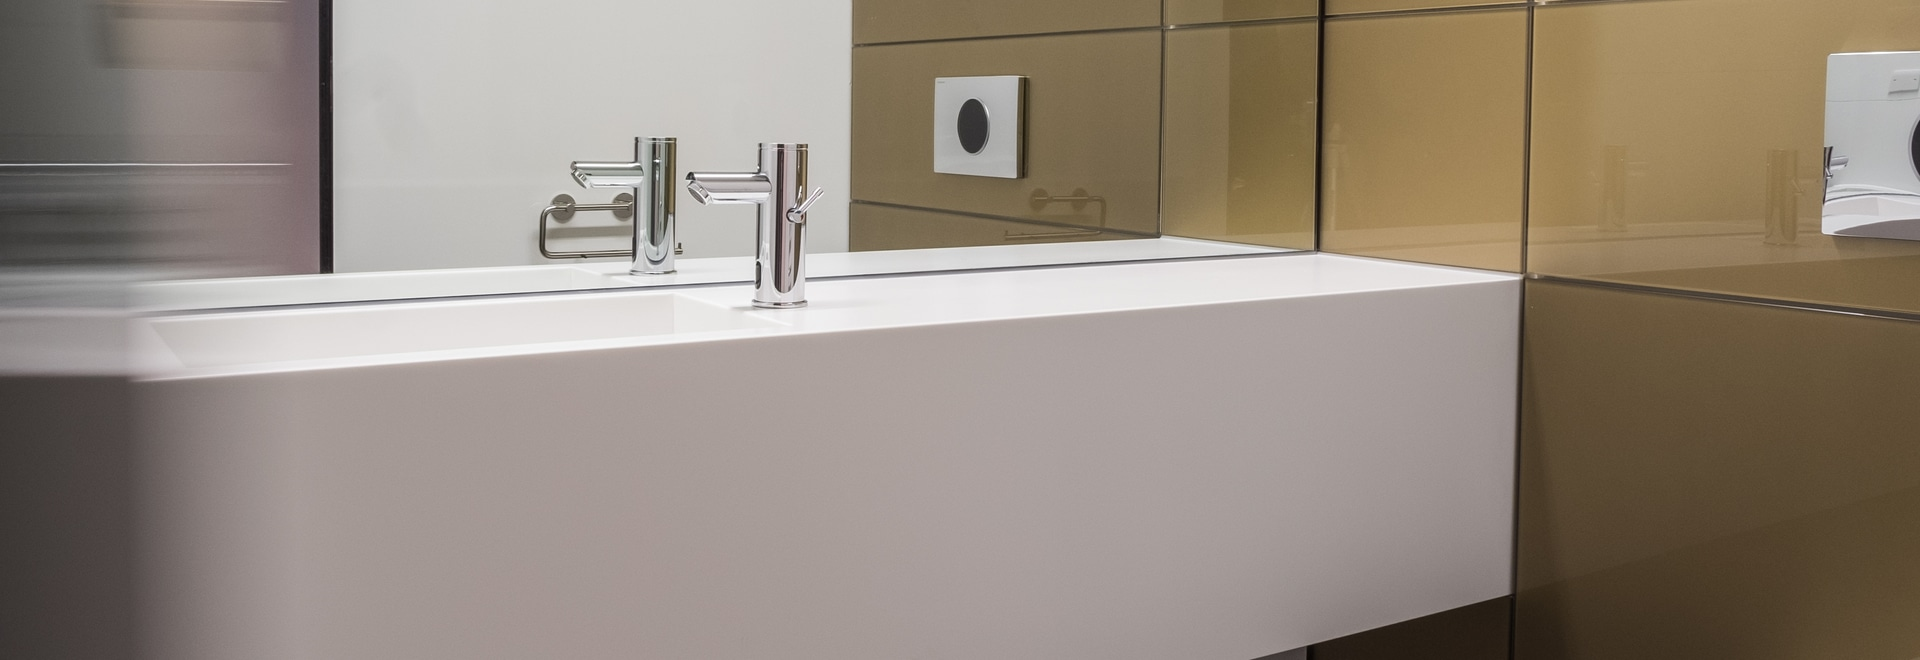 office washroom design. Office Washroom Design. Self-contained Superloo Design